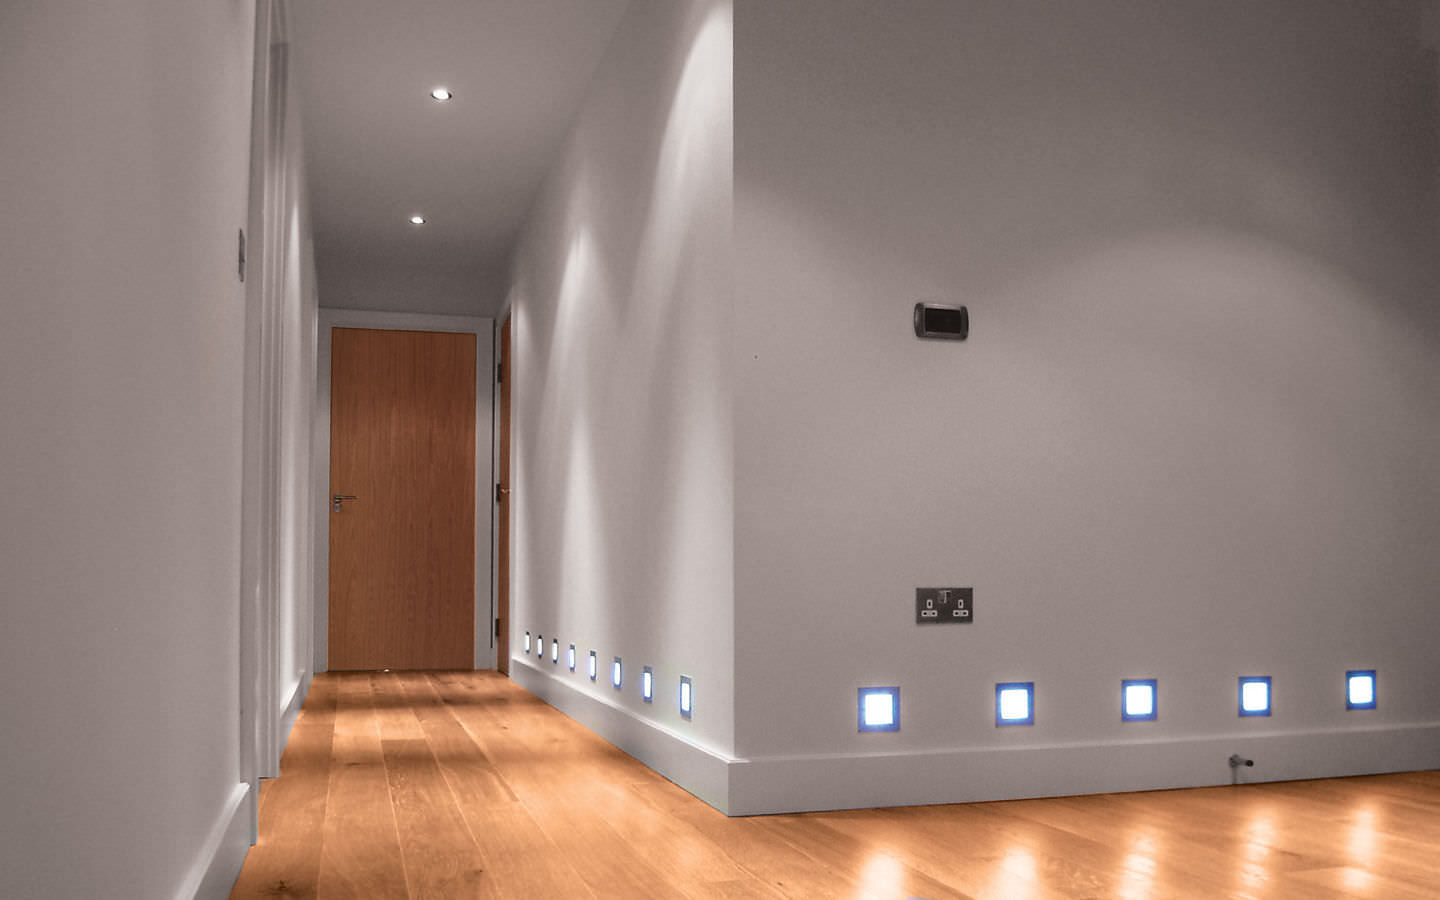 Recessed Lighting Installation Cost Guide In 2019